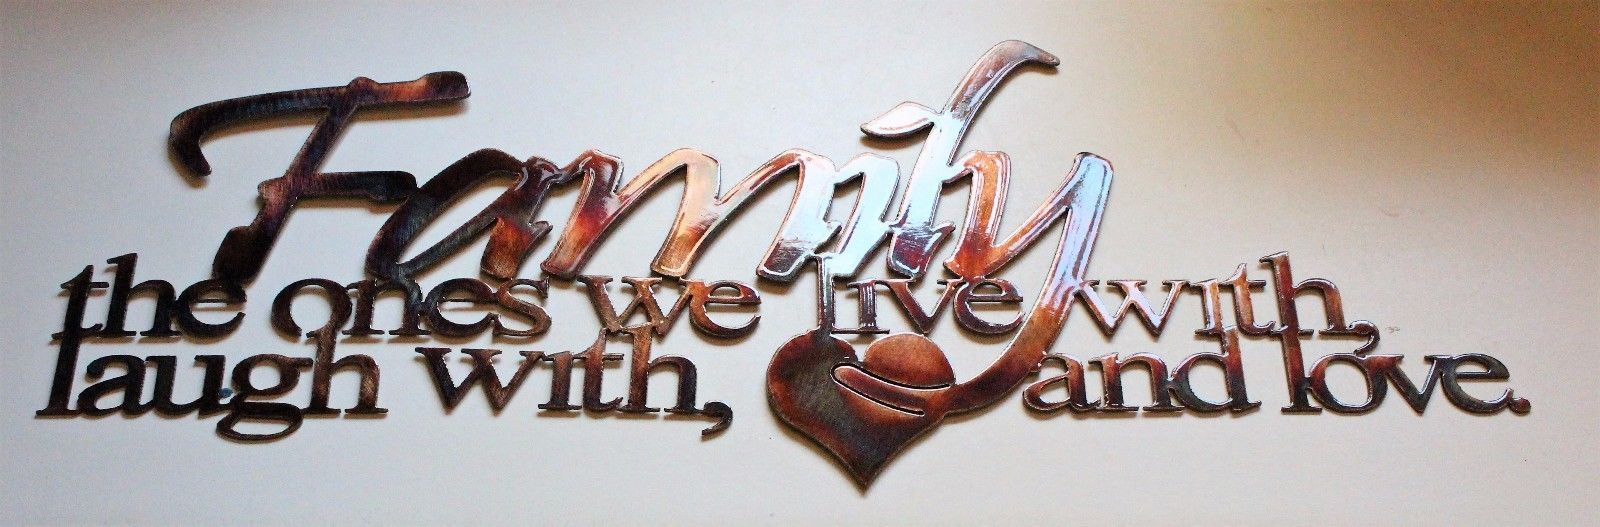 Family Metal Wall Art family the ones we live with laugh with and love metal wall art